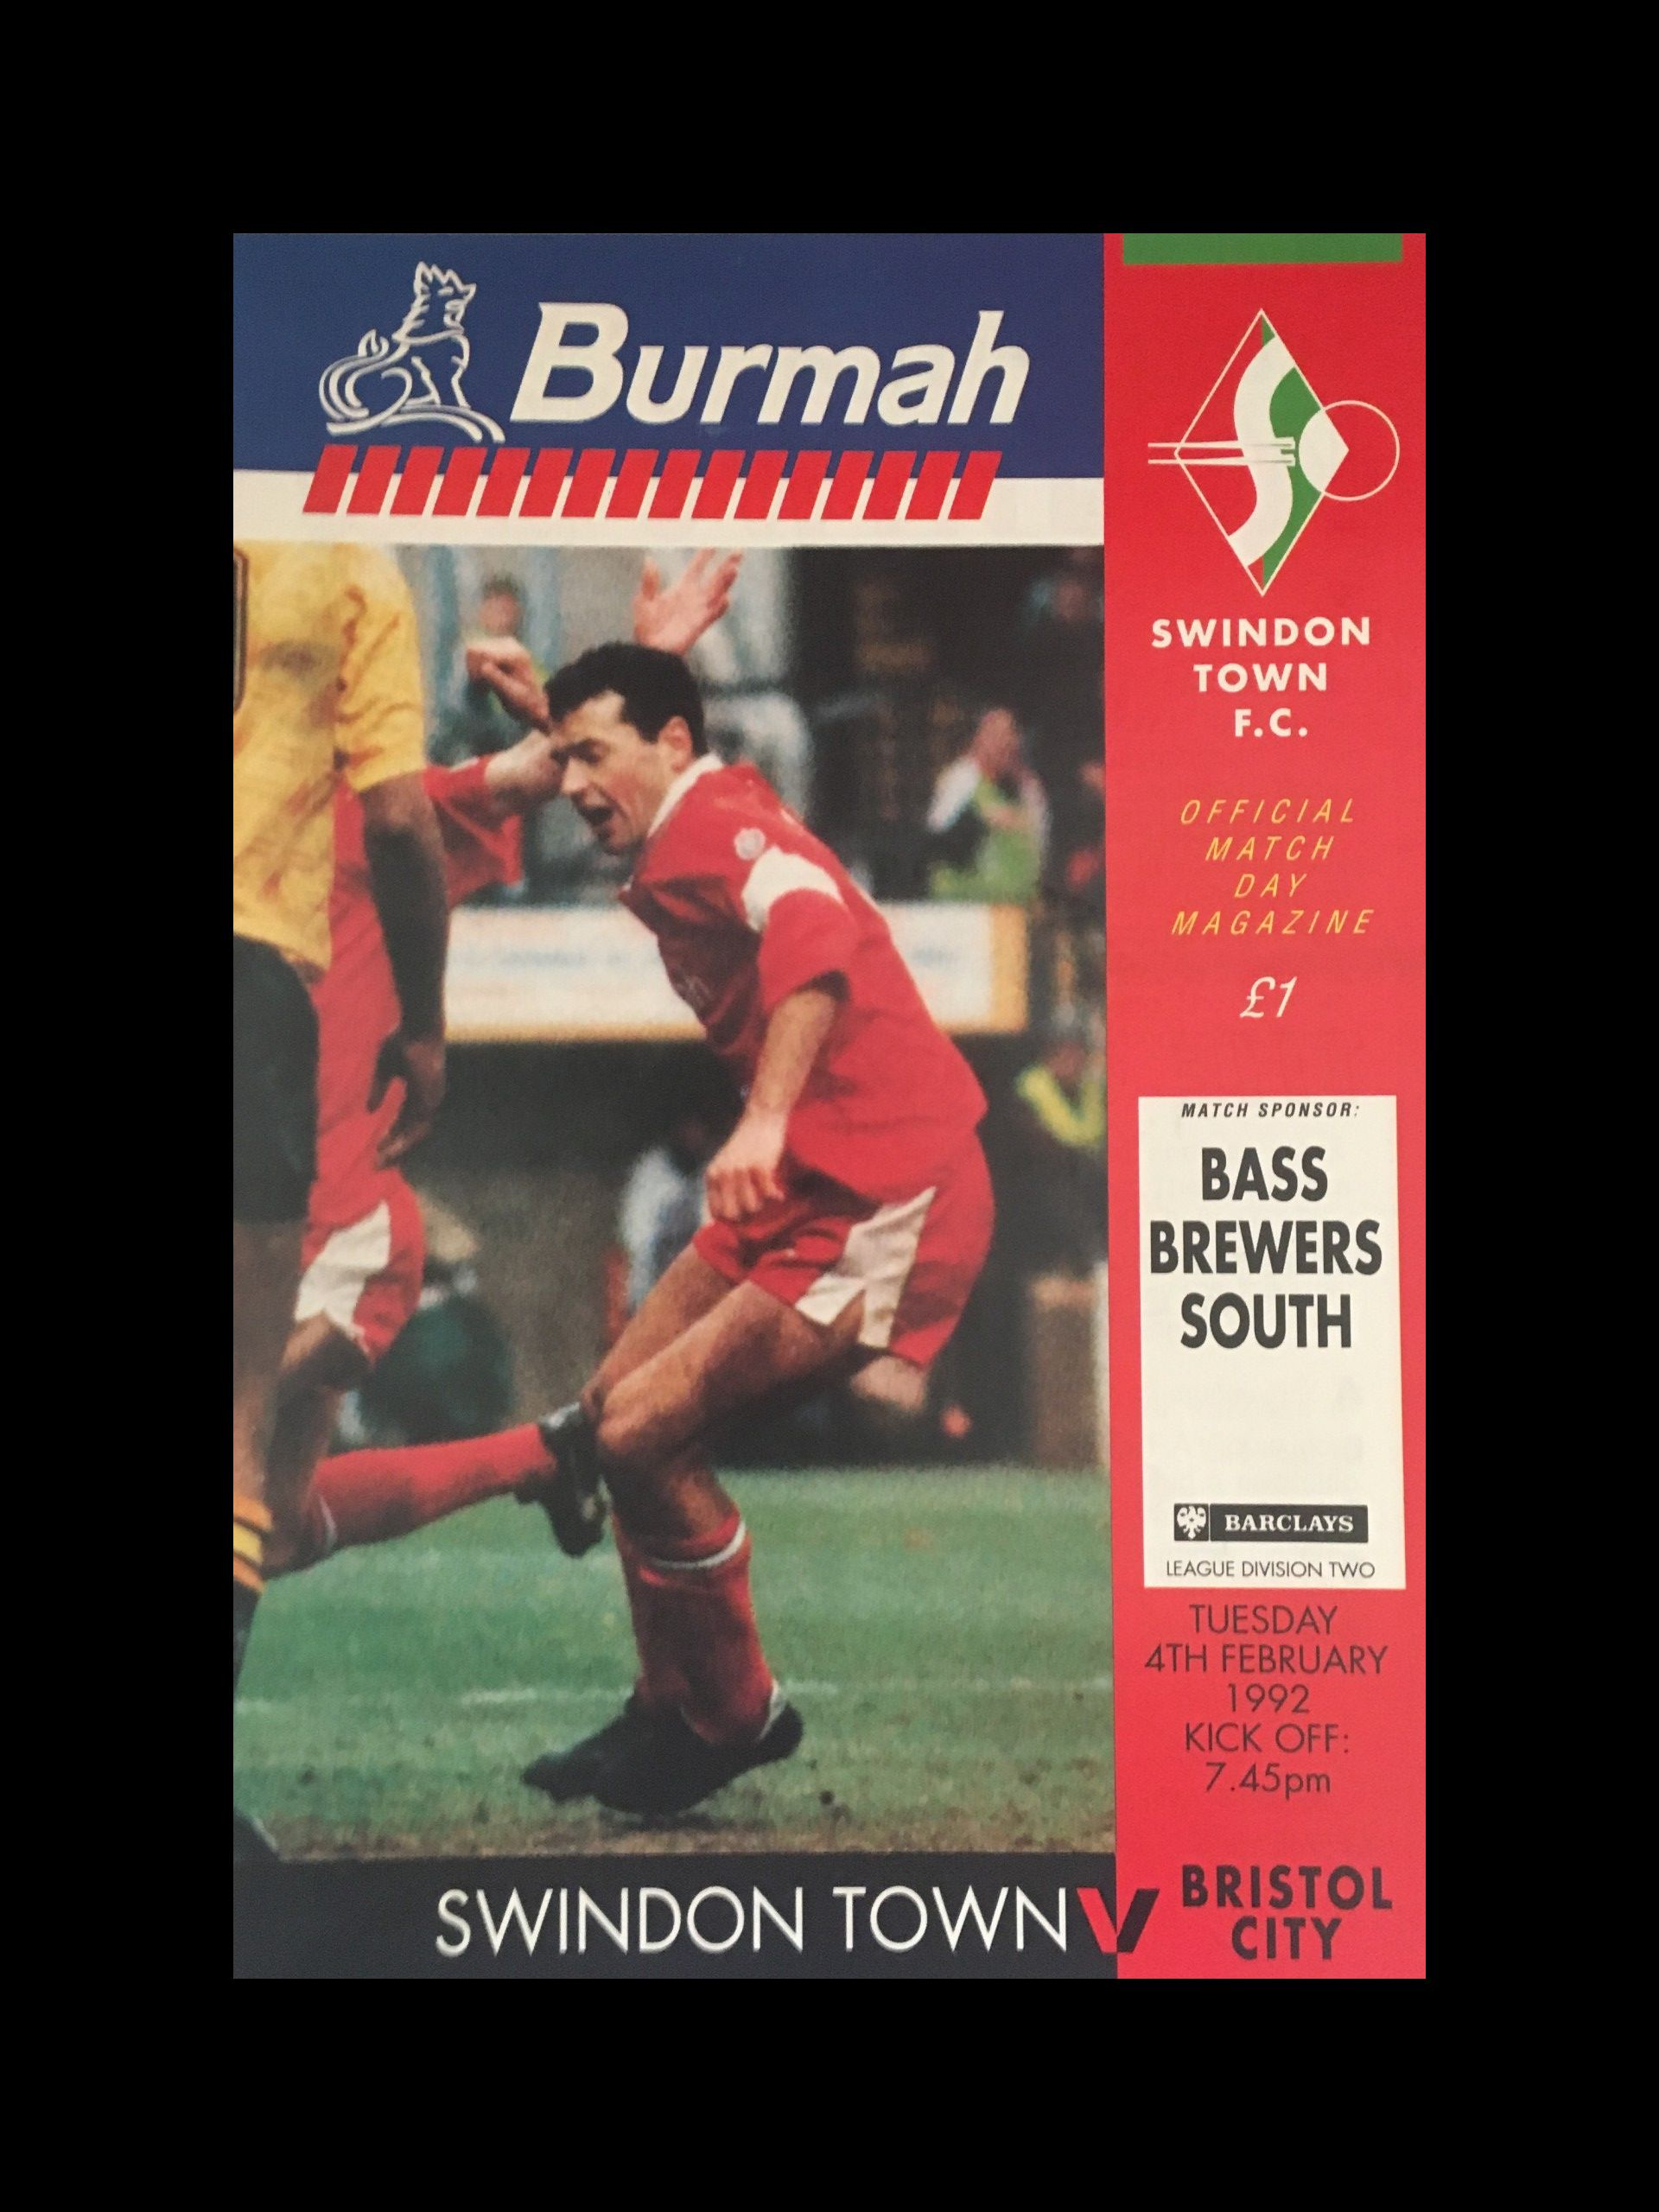 Swindon Town v Bristol City 04-02-1992 Programme